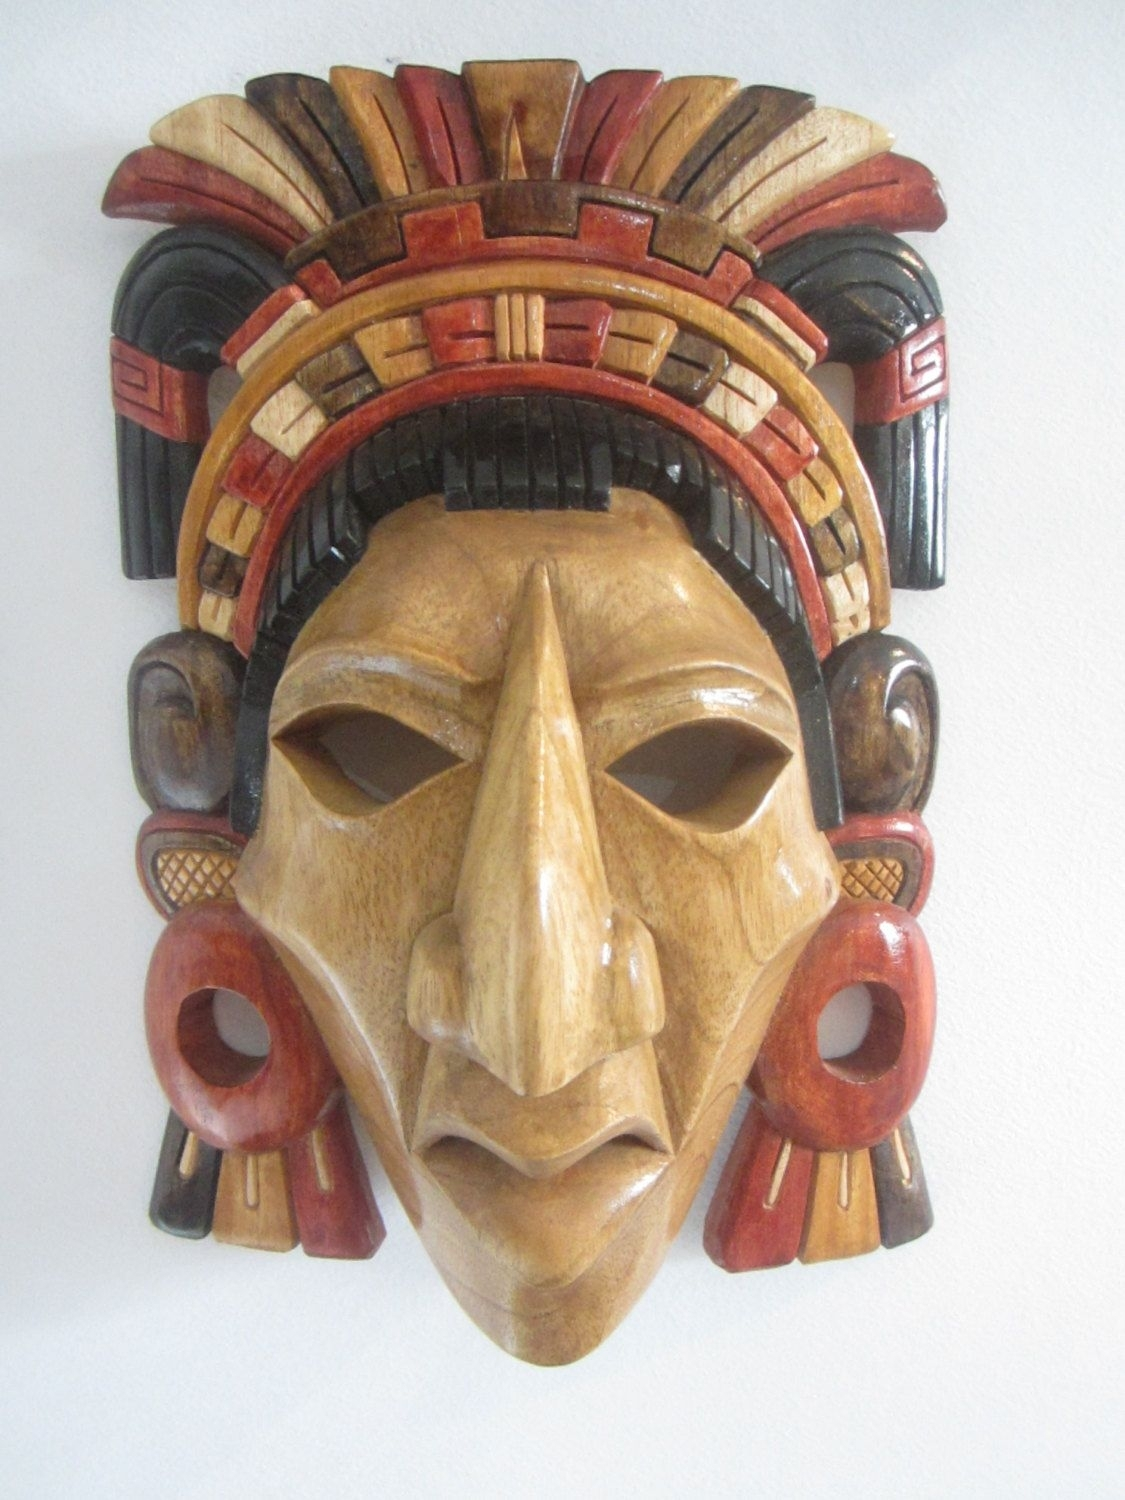 Pinbradley Harris On Heads And Masks | Aztec Mask, Ceramic Mask intended for Aztec Masks And Ther Meanings